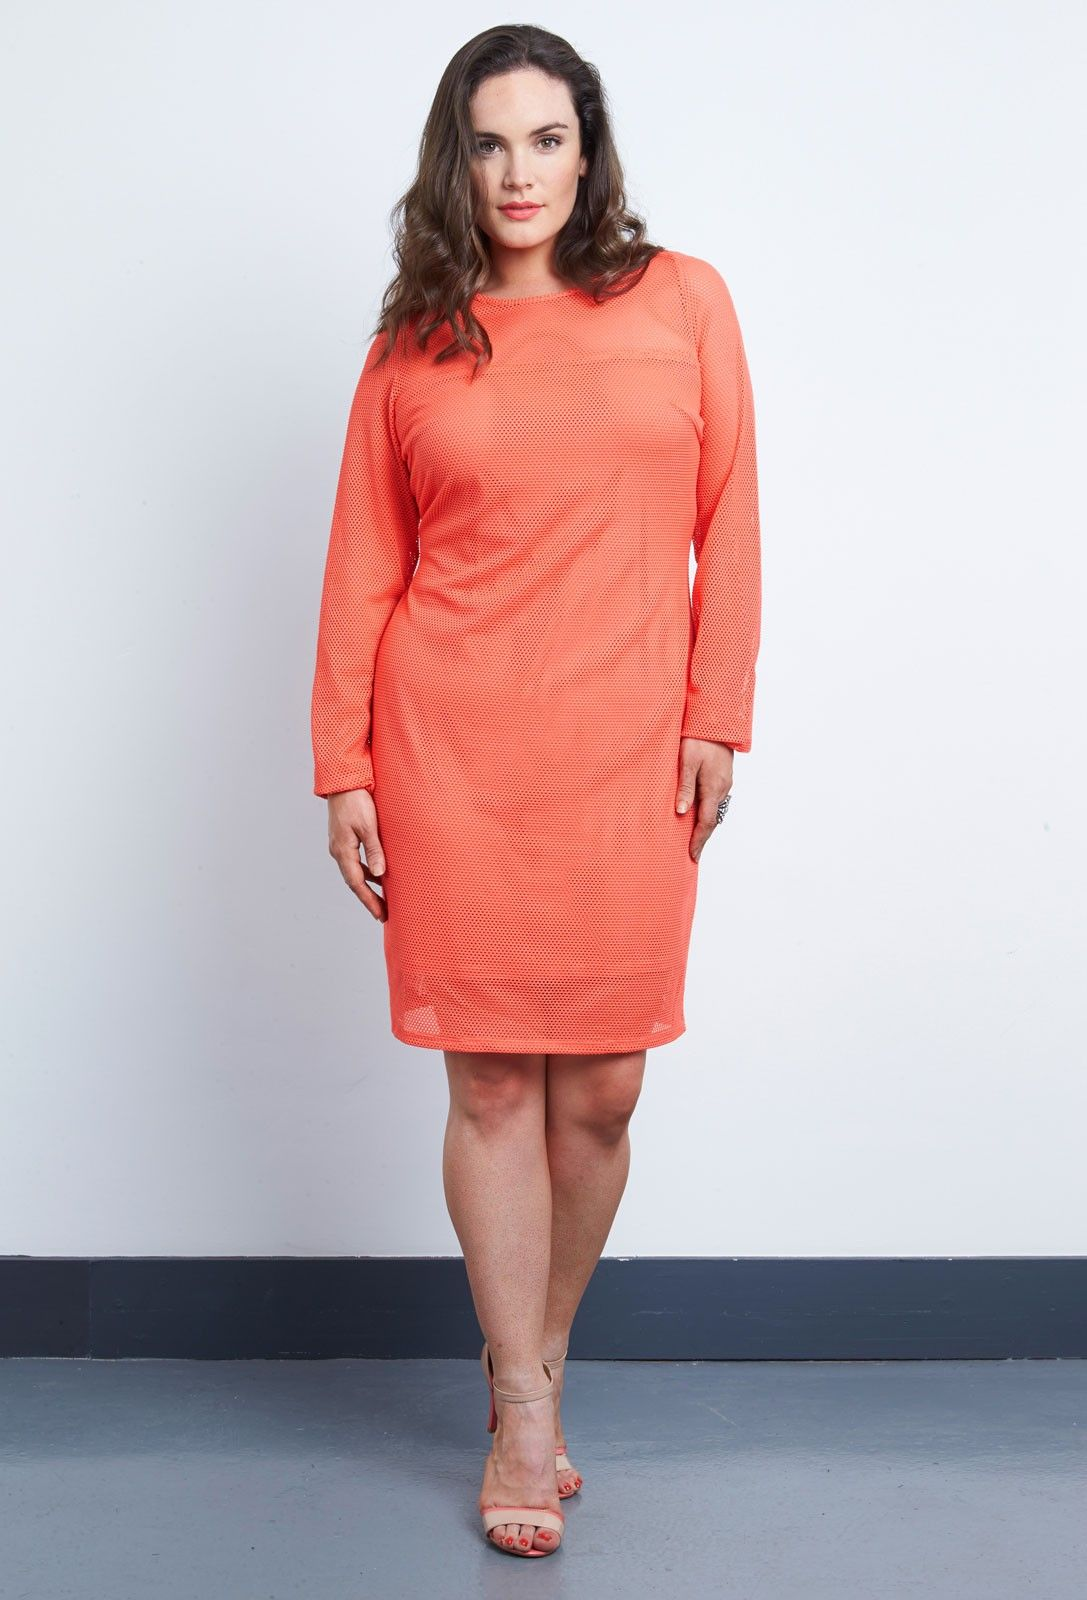 Net mesh bodycon dress from anna scholz plus size dress collections